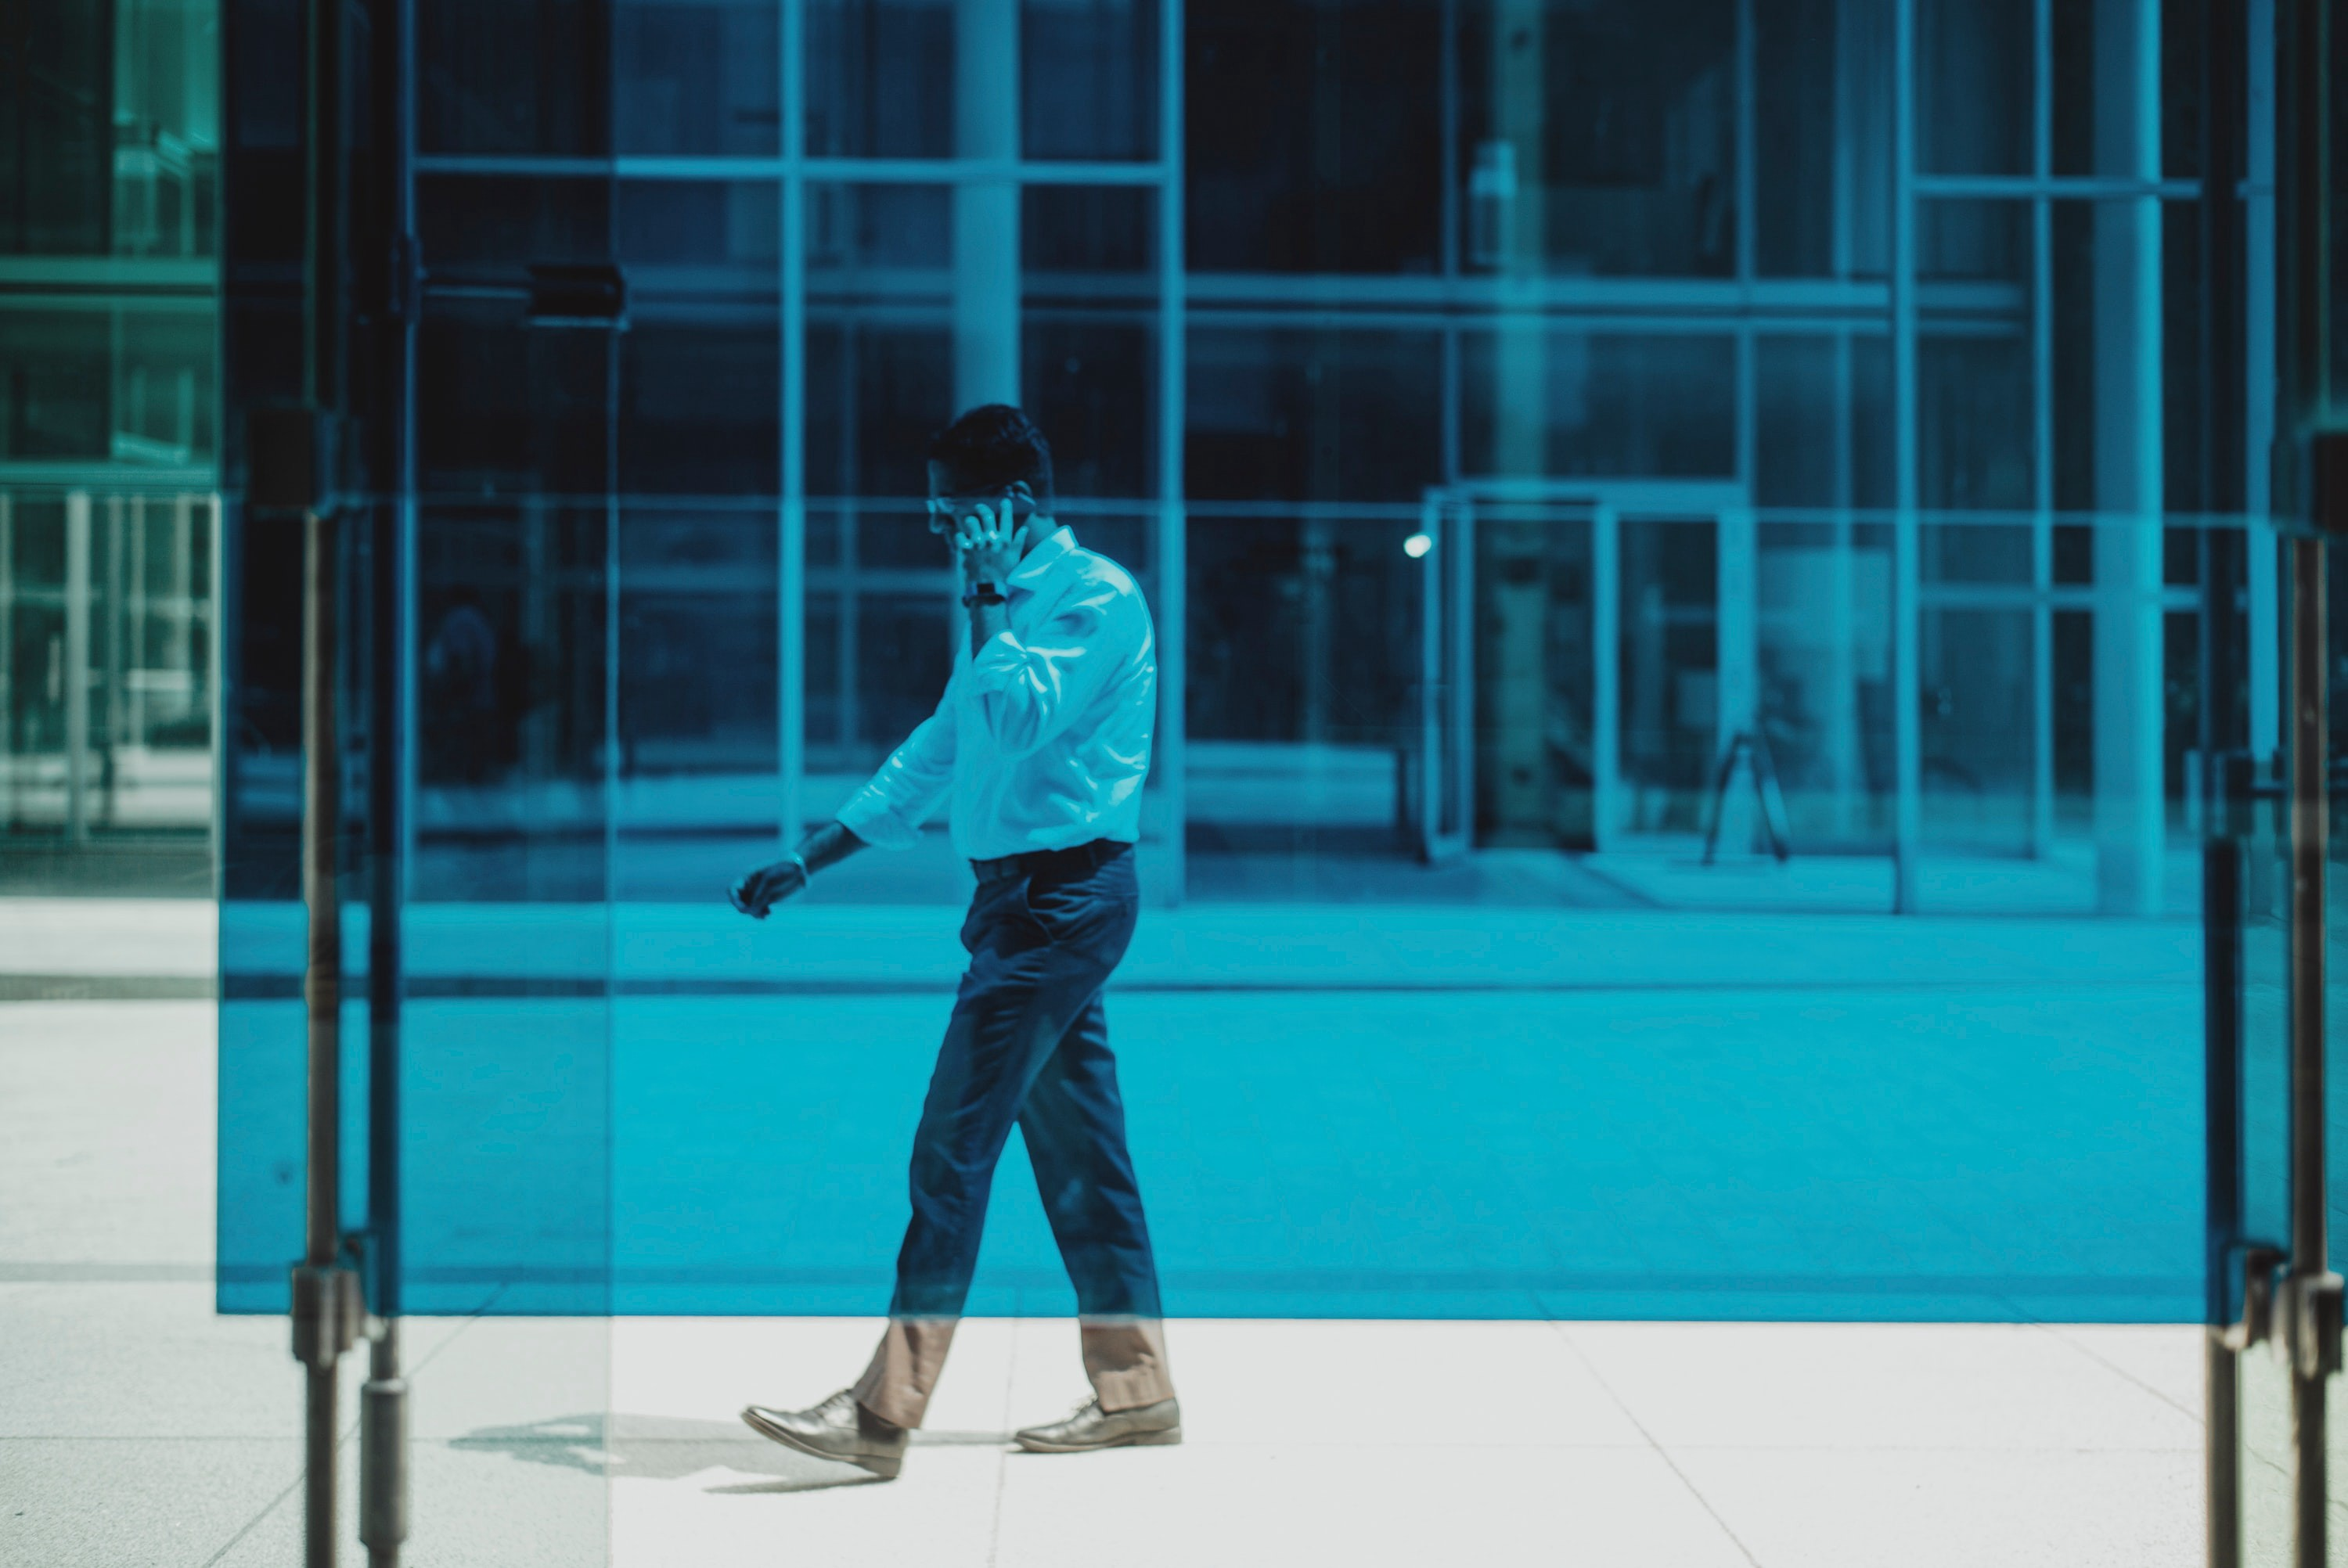 A man with a phone walking behind a blue glass.